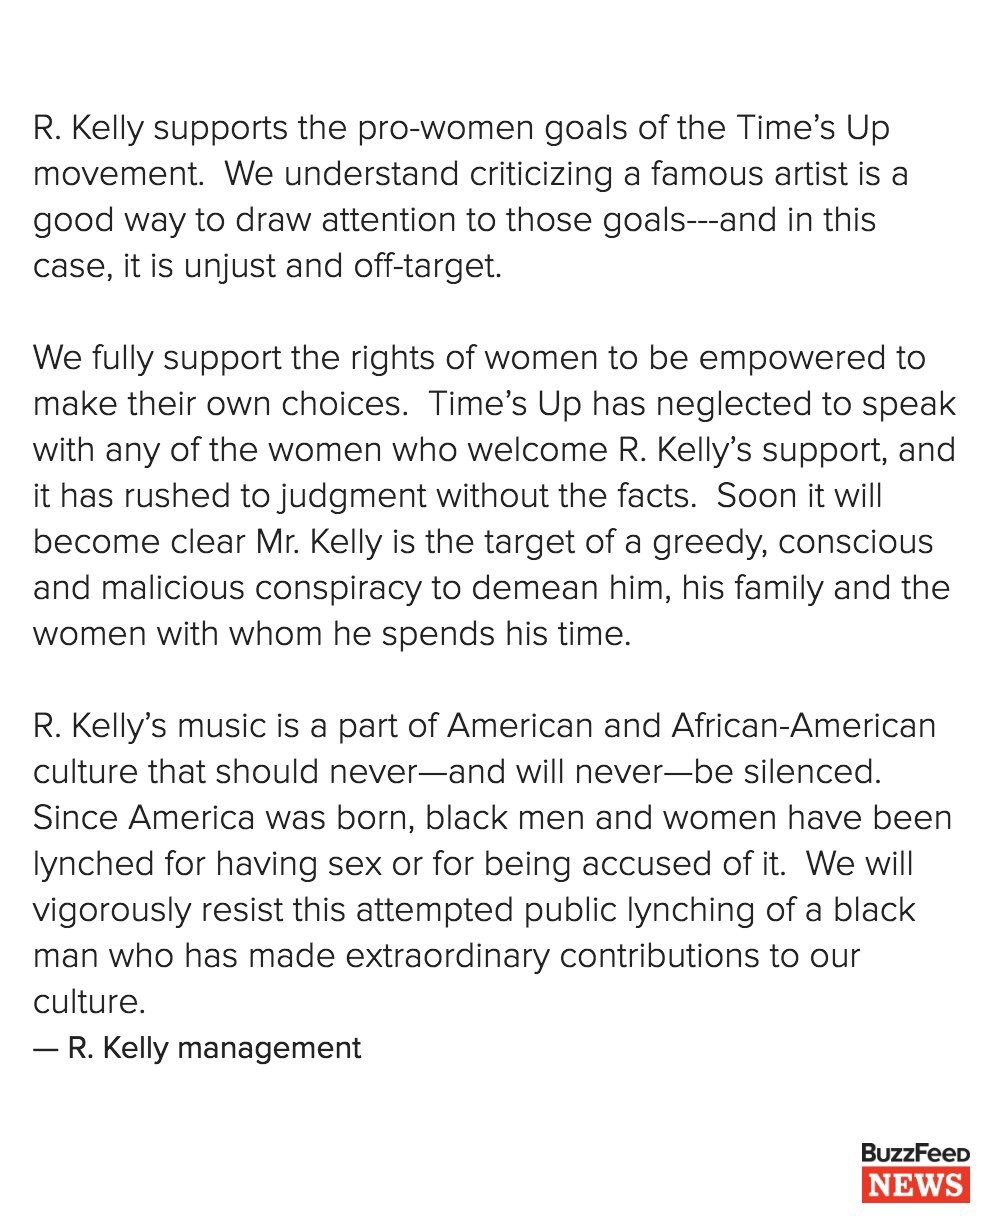 An Erasure Poem From R Kellys Managements Statement About